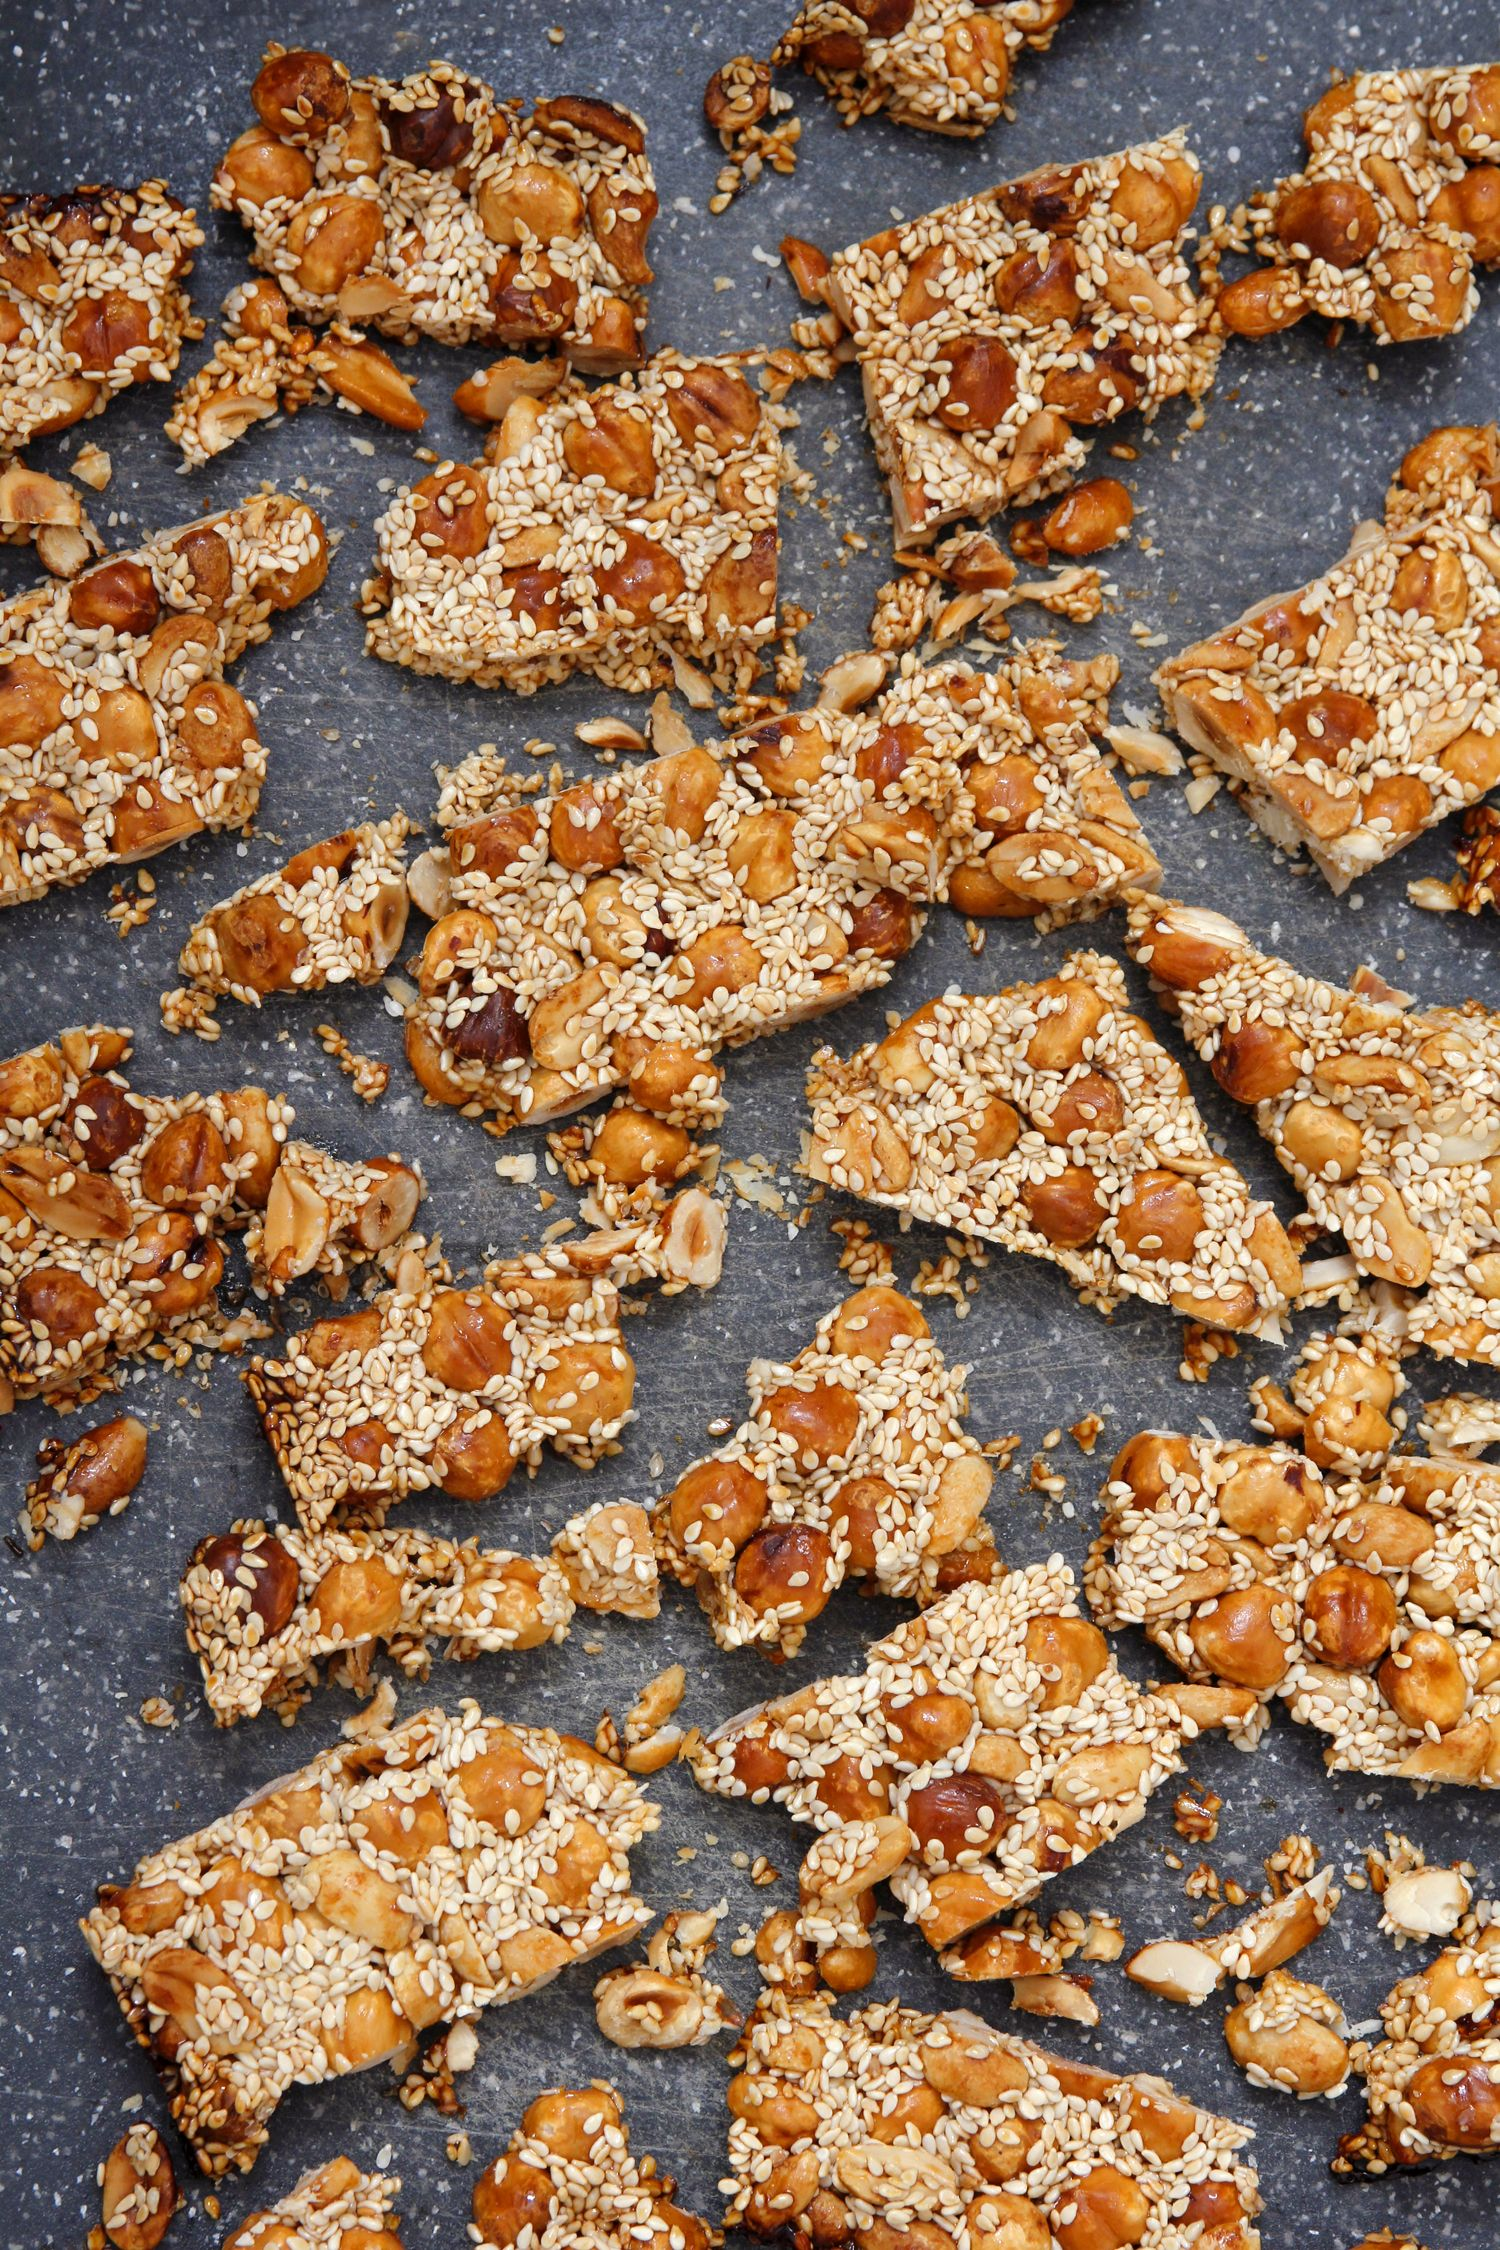 Sesame and Nut Brittle